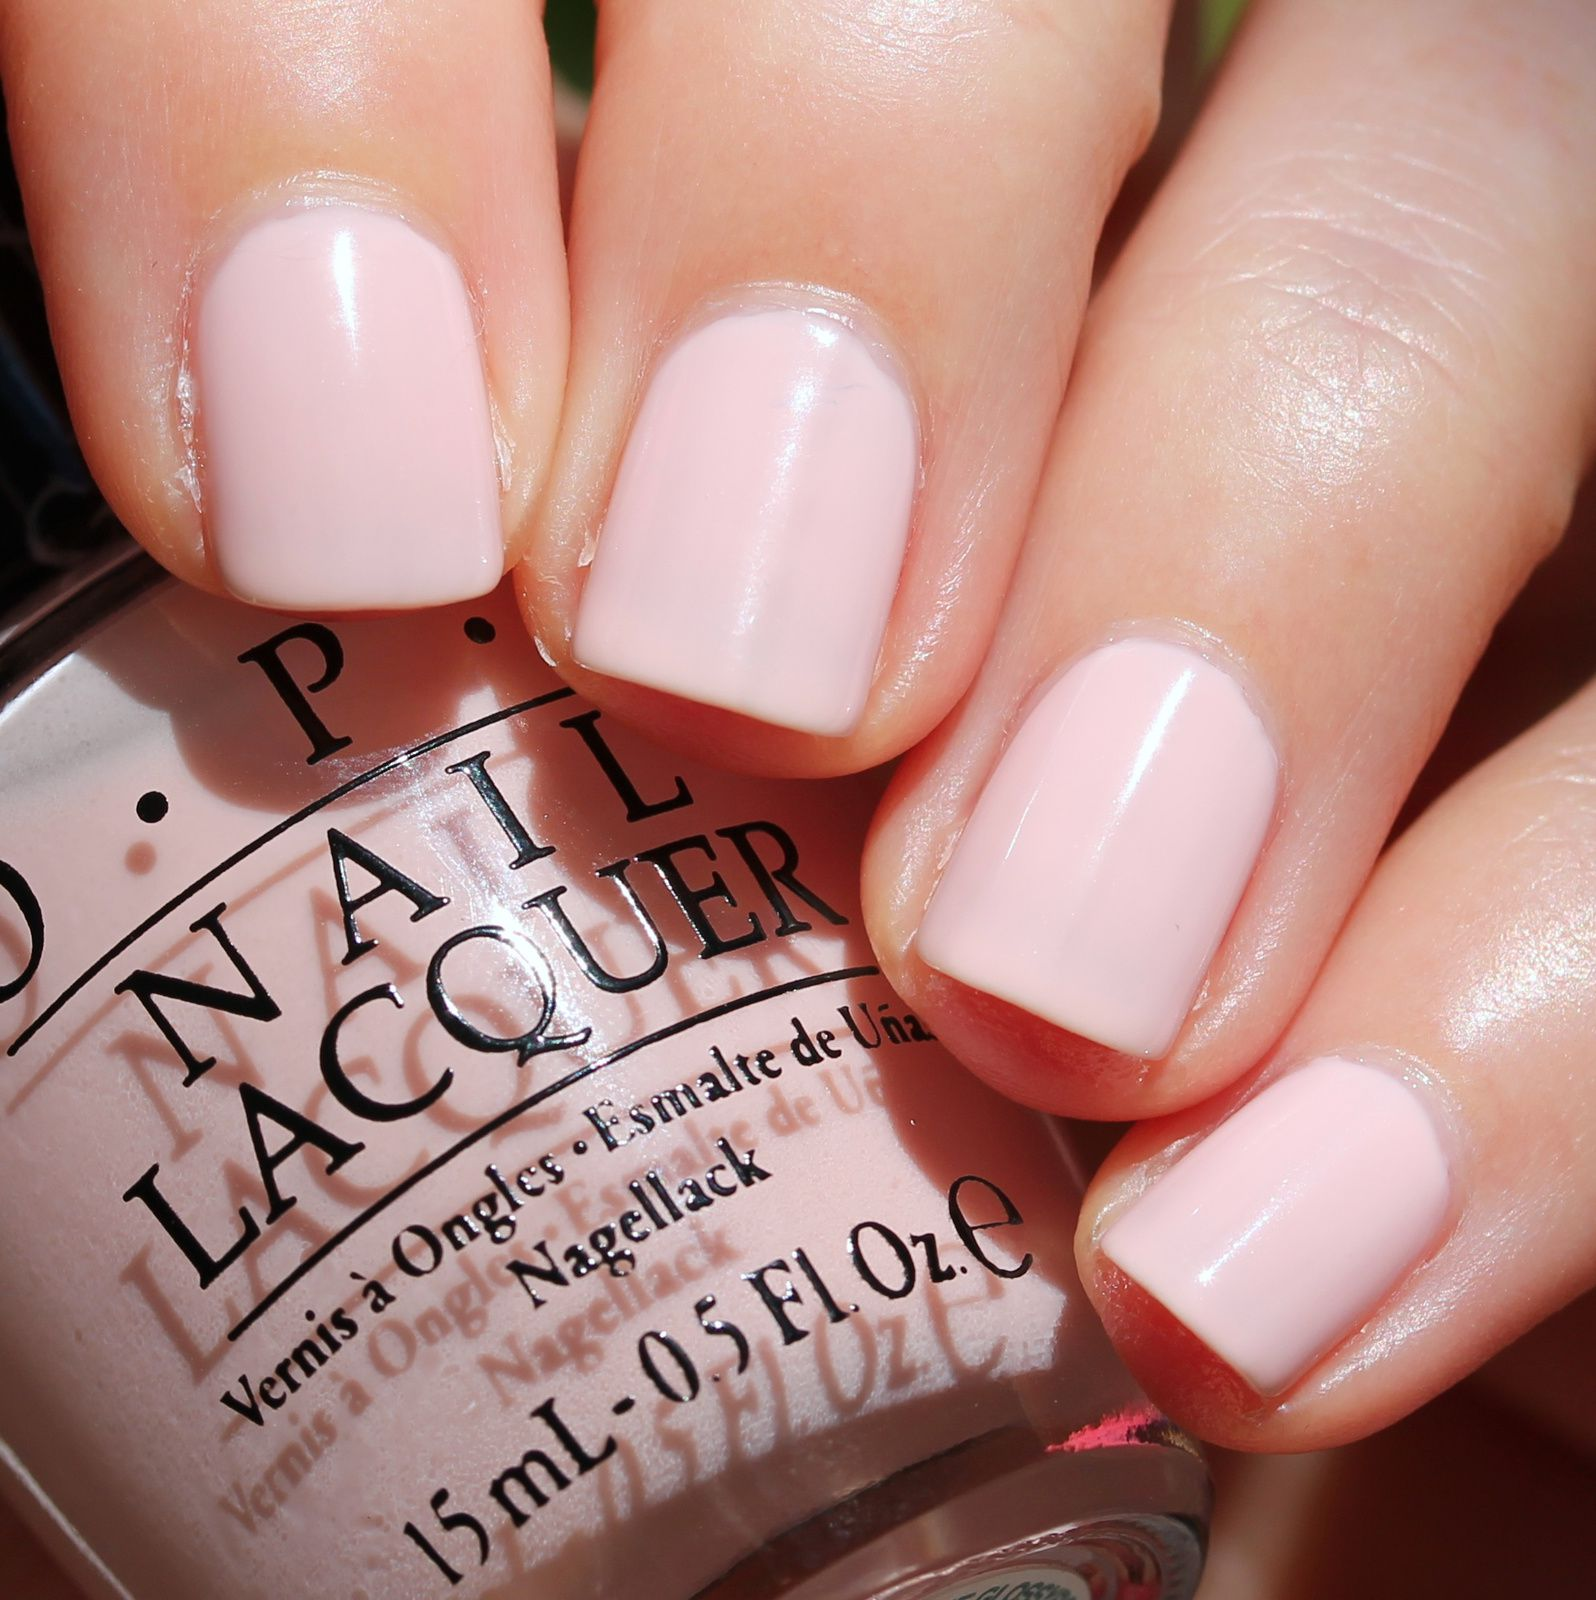 Sally Hansen Complete Care 4-in-1 Extra Moisturizing Nail Treatment / OPI Pink Outside The Glossybox / HK Girl Top Coat